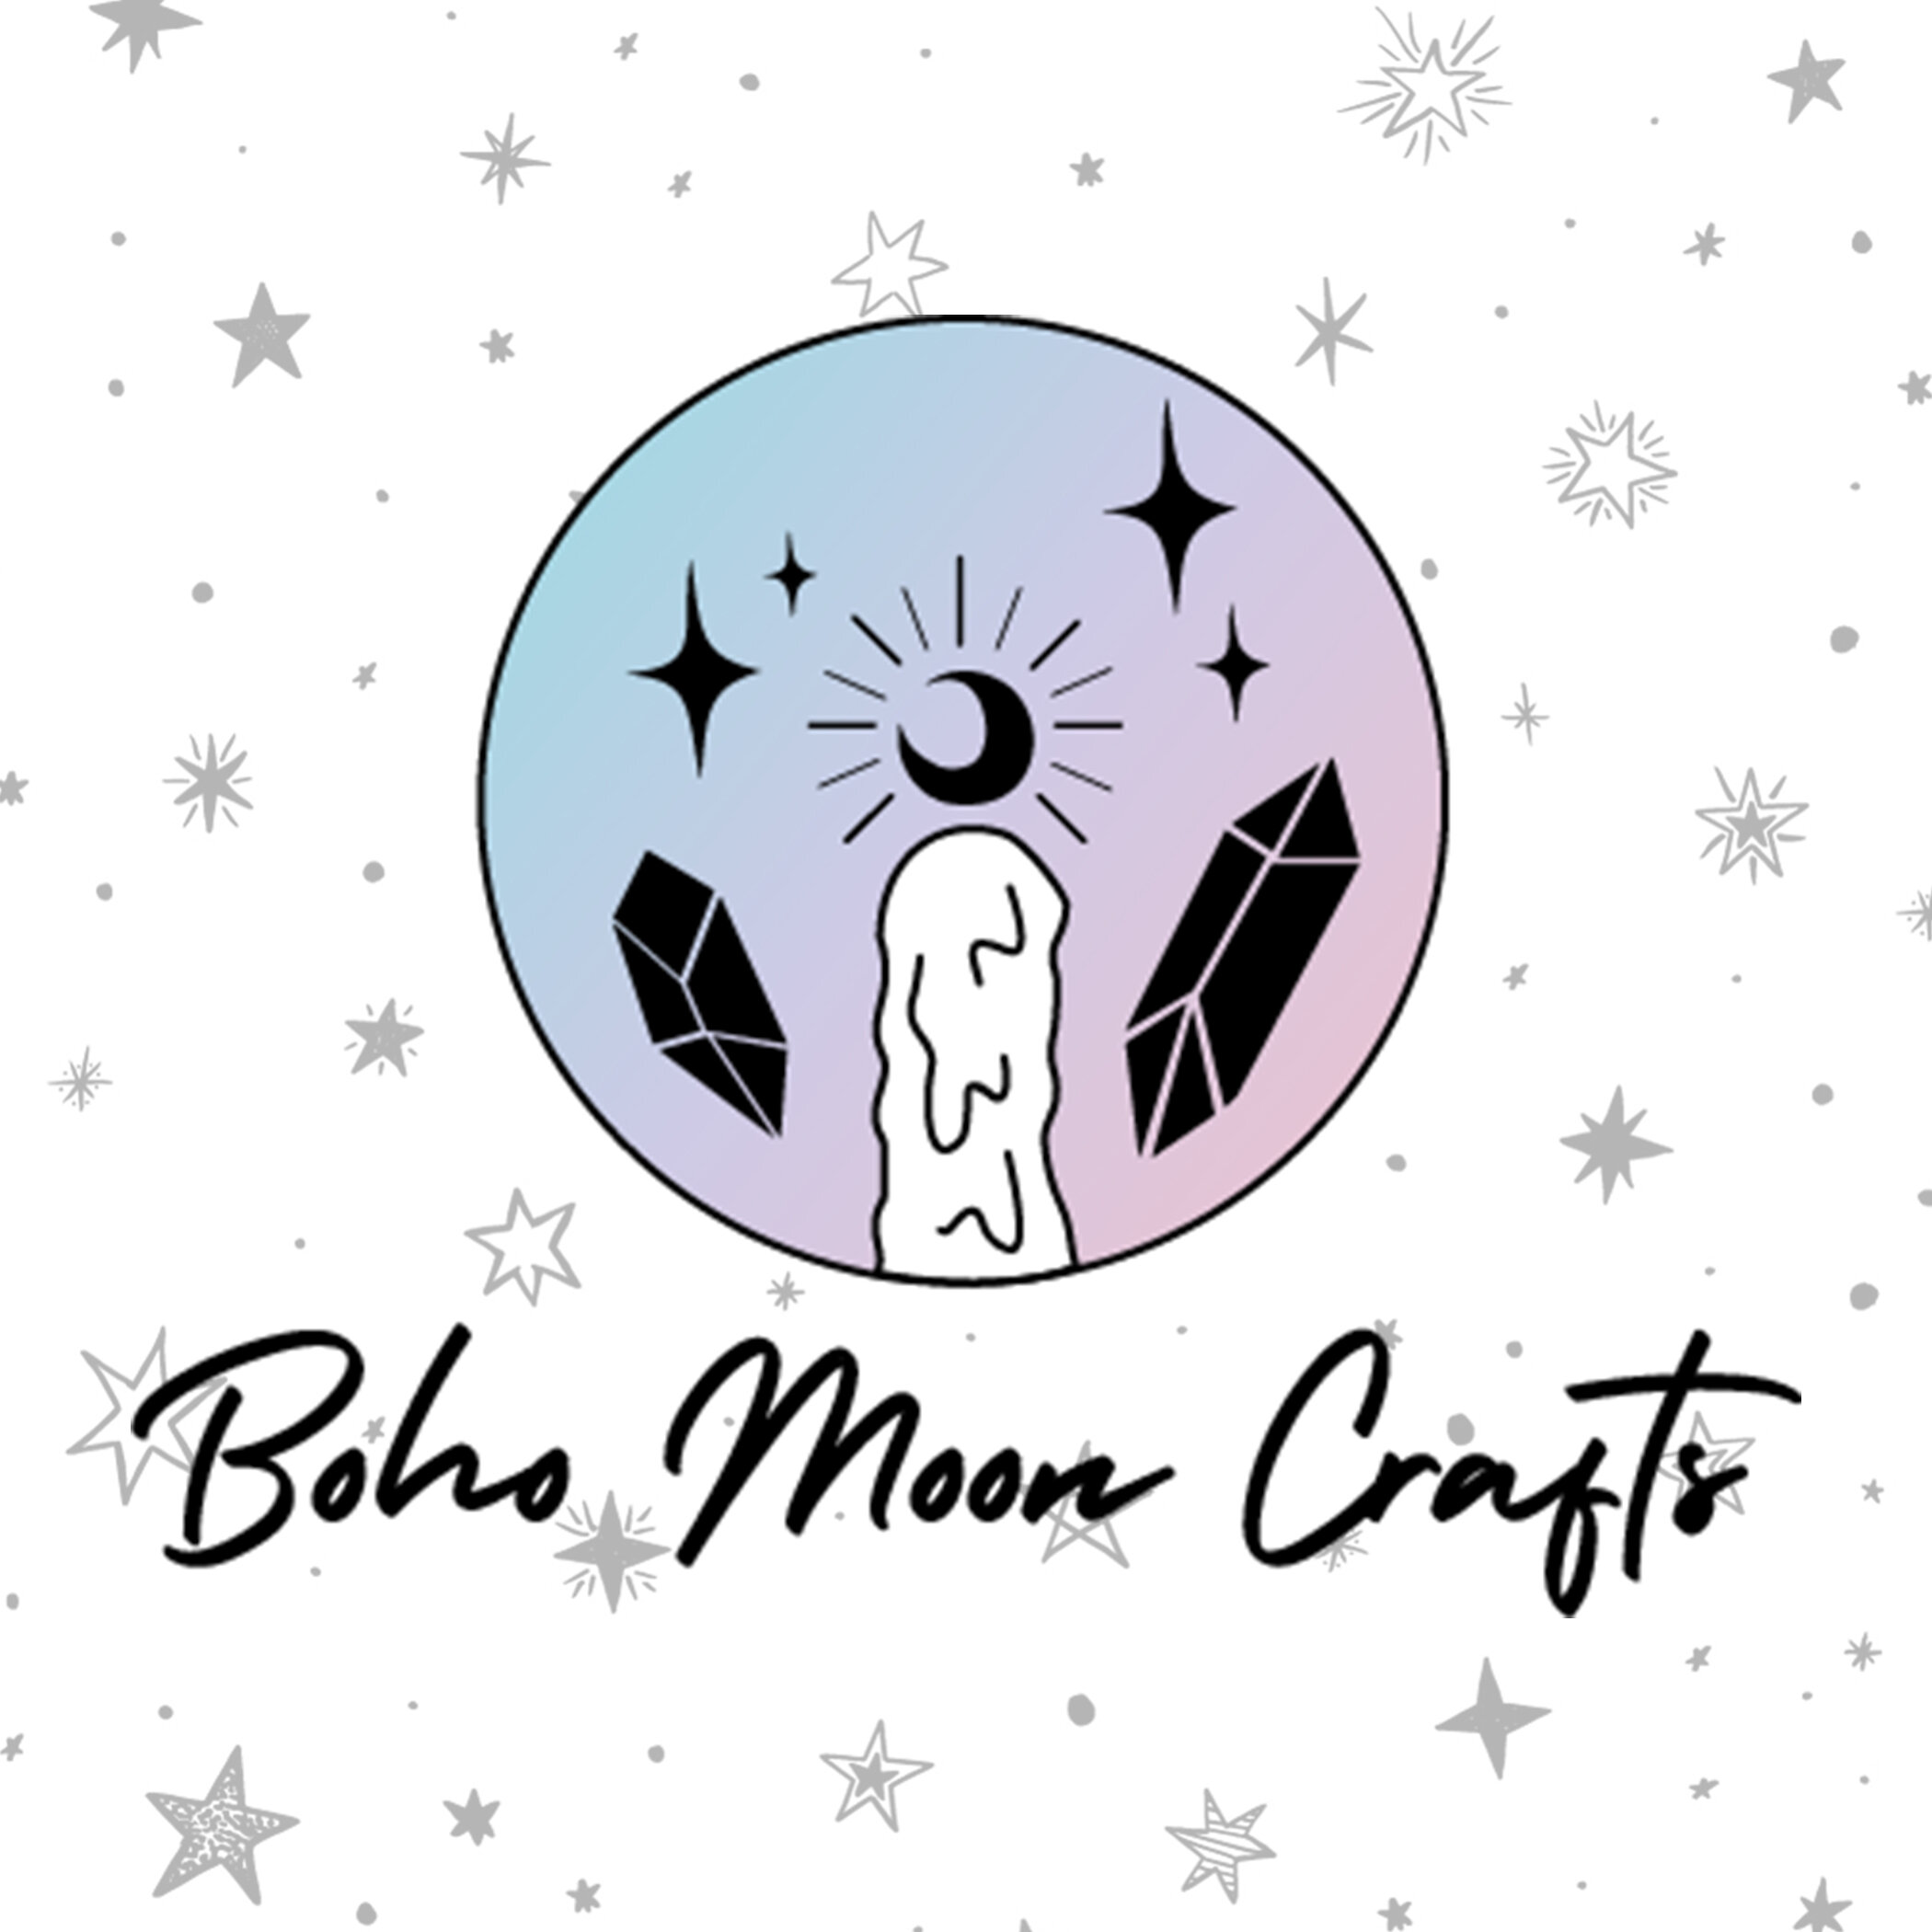 Boho Moon Crafts Brand Development